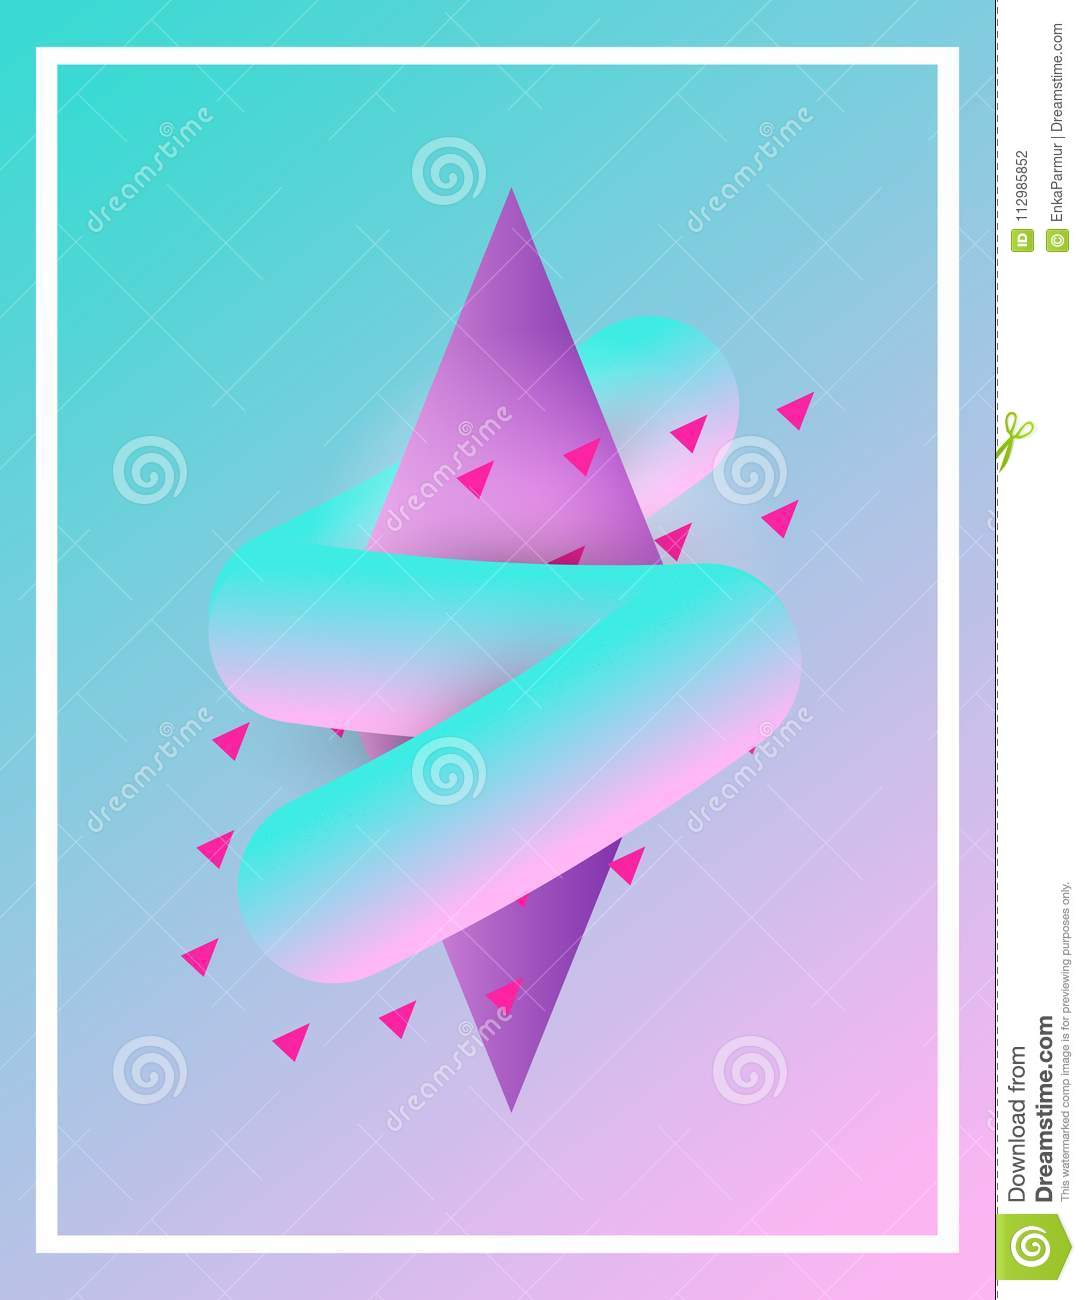 Bright gradient abstract shape poster